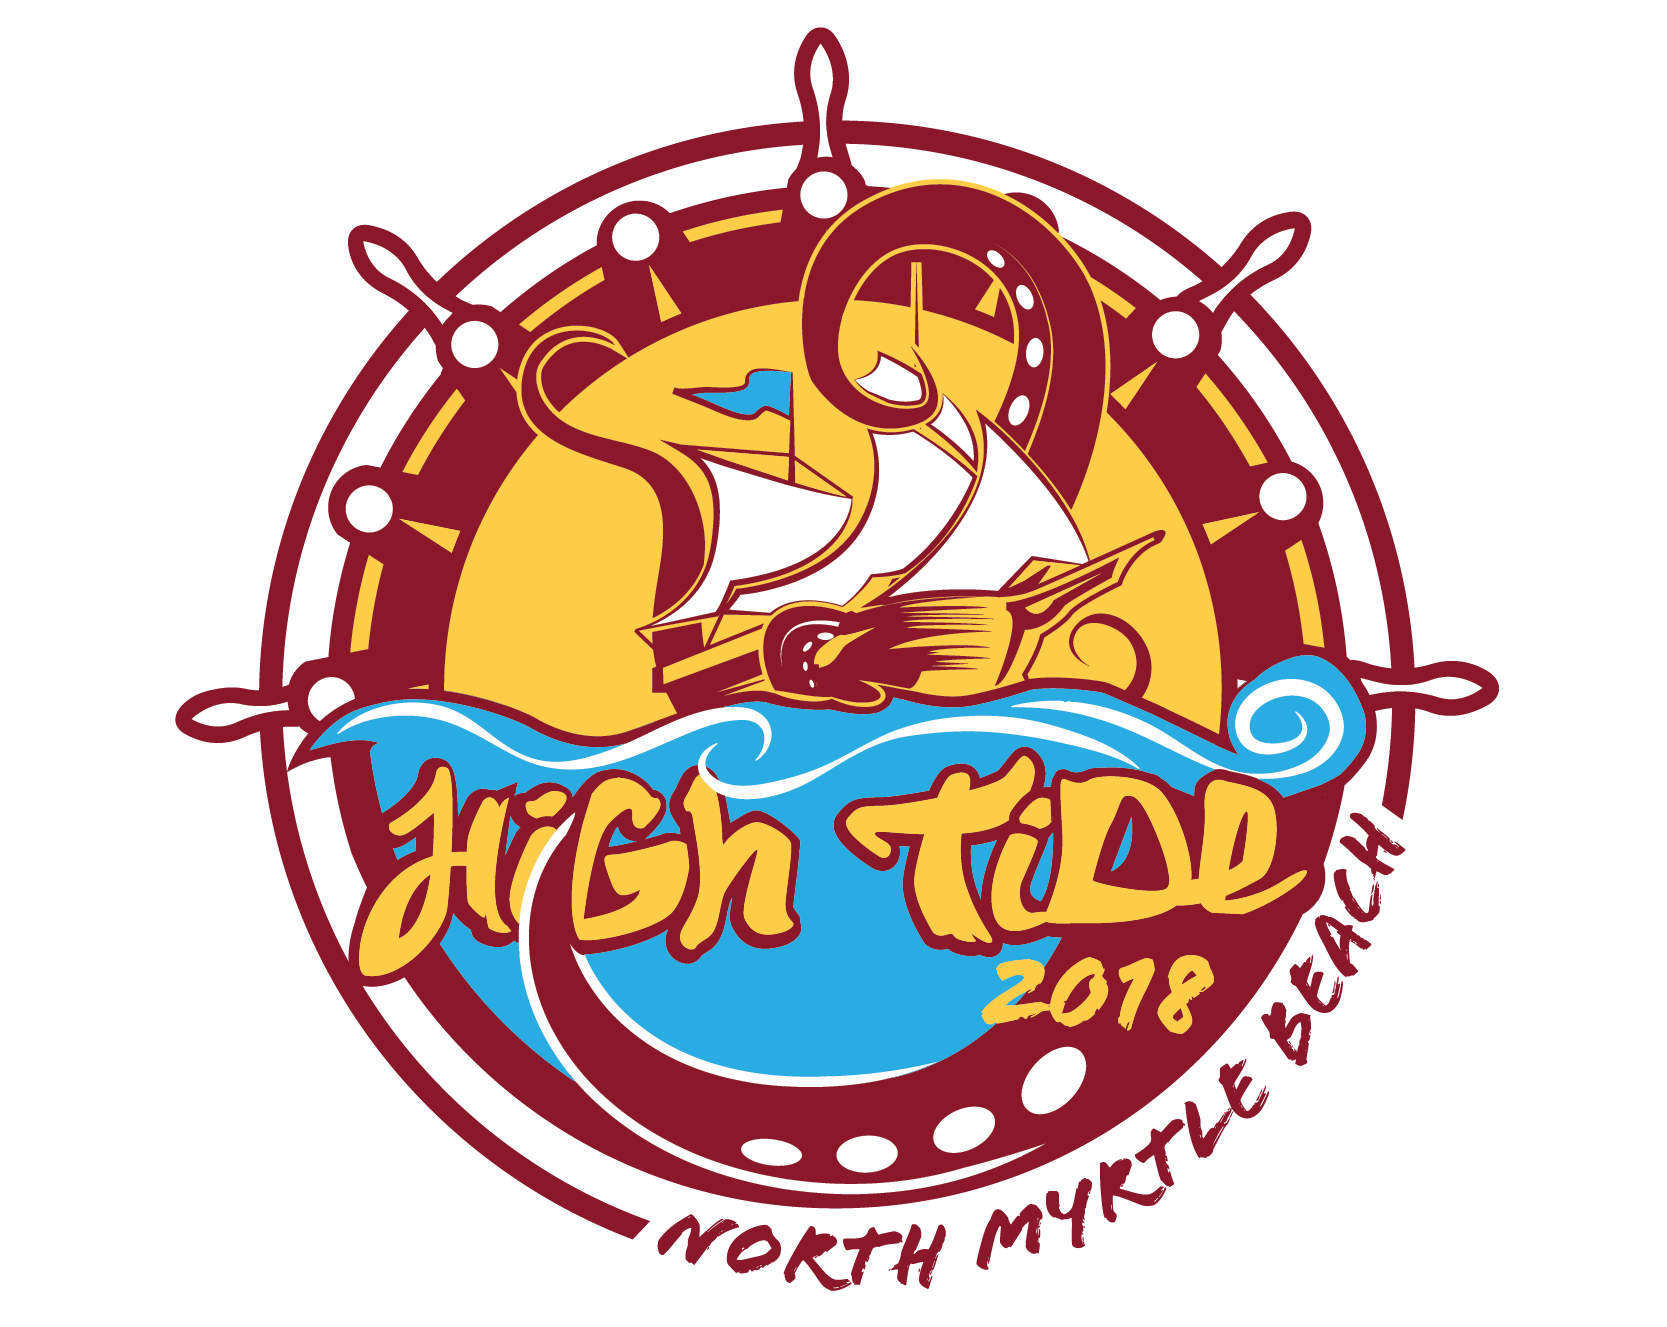 Overview high tide 2 march 12 15 2018 high tide ultimate overview high tide 2 march 12 15 2018 high tide ultimate tournament nvjuhfo Gallery